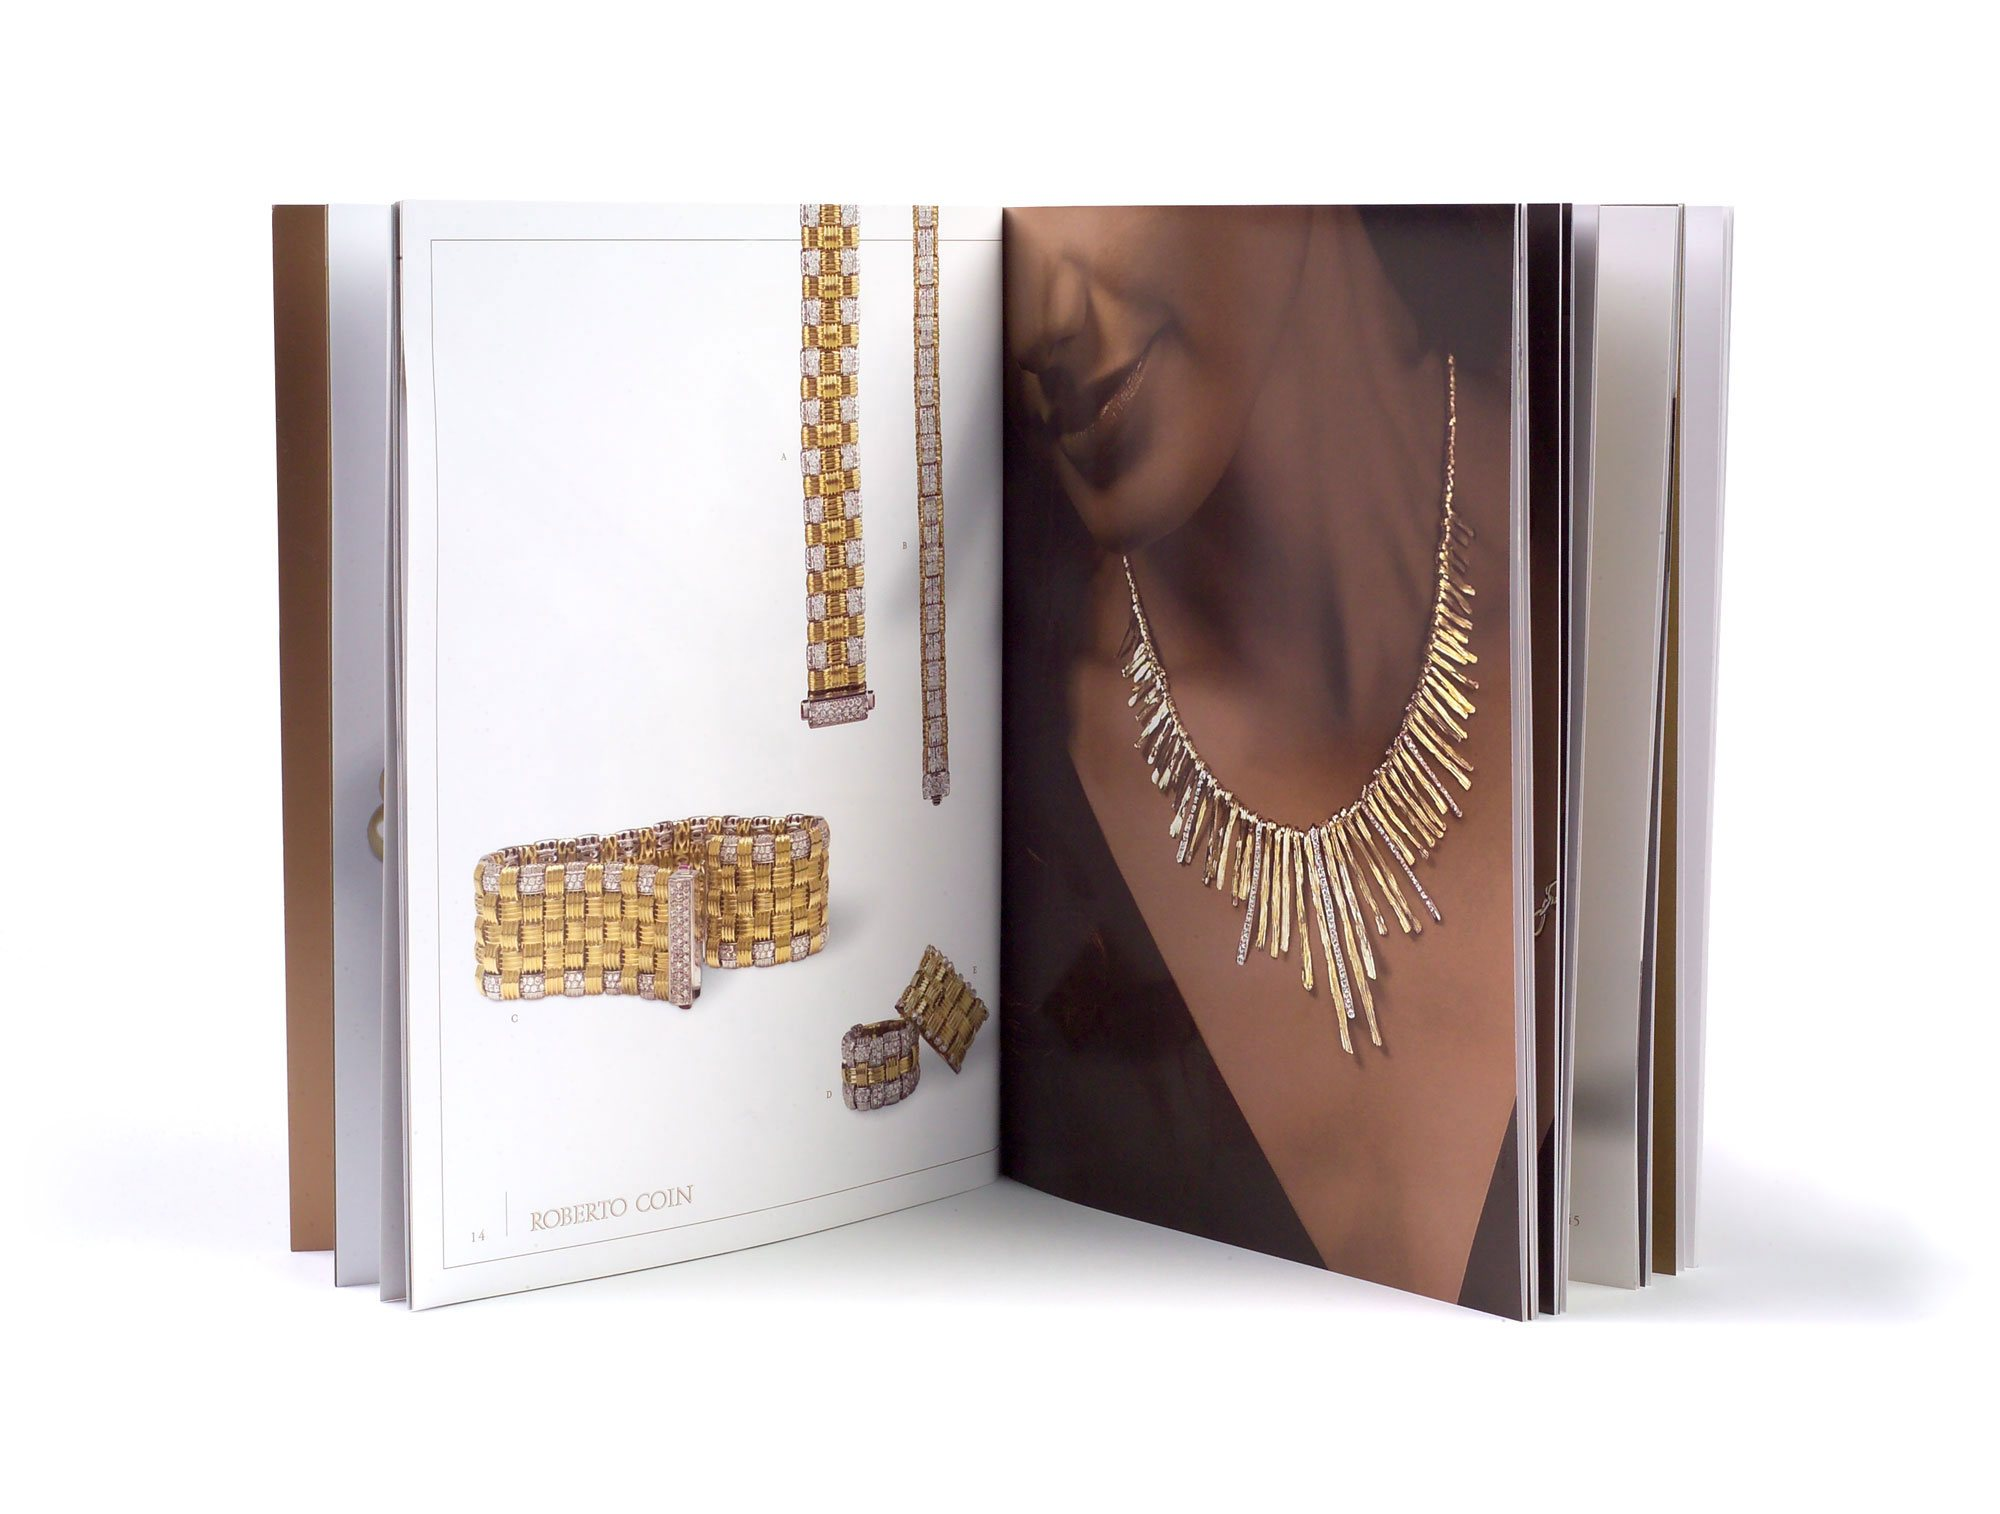 Cached Wall fashion stencil kit